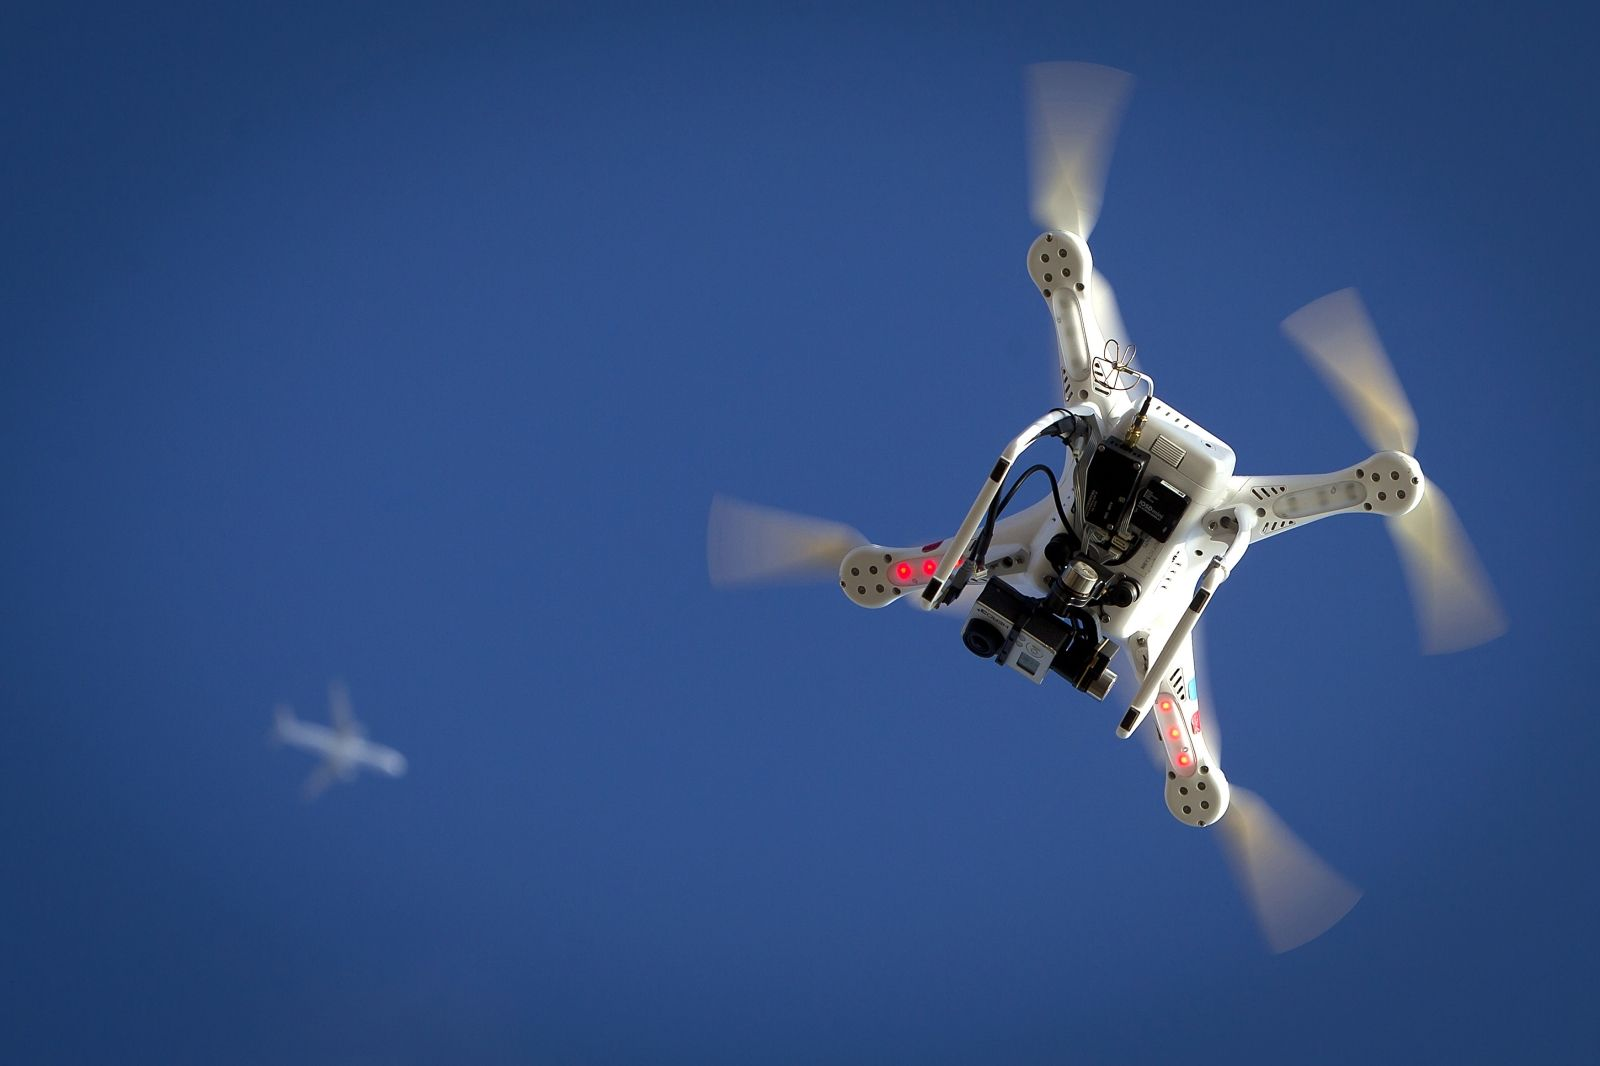 Drone carrying abortion pills